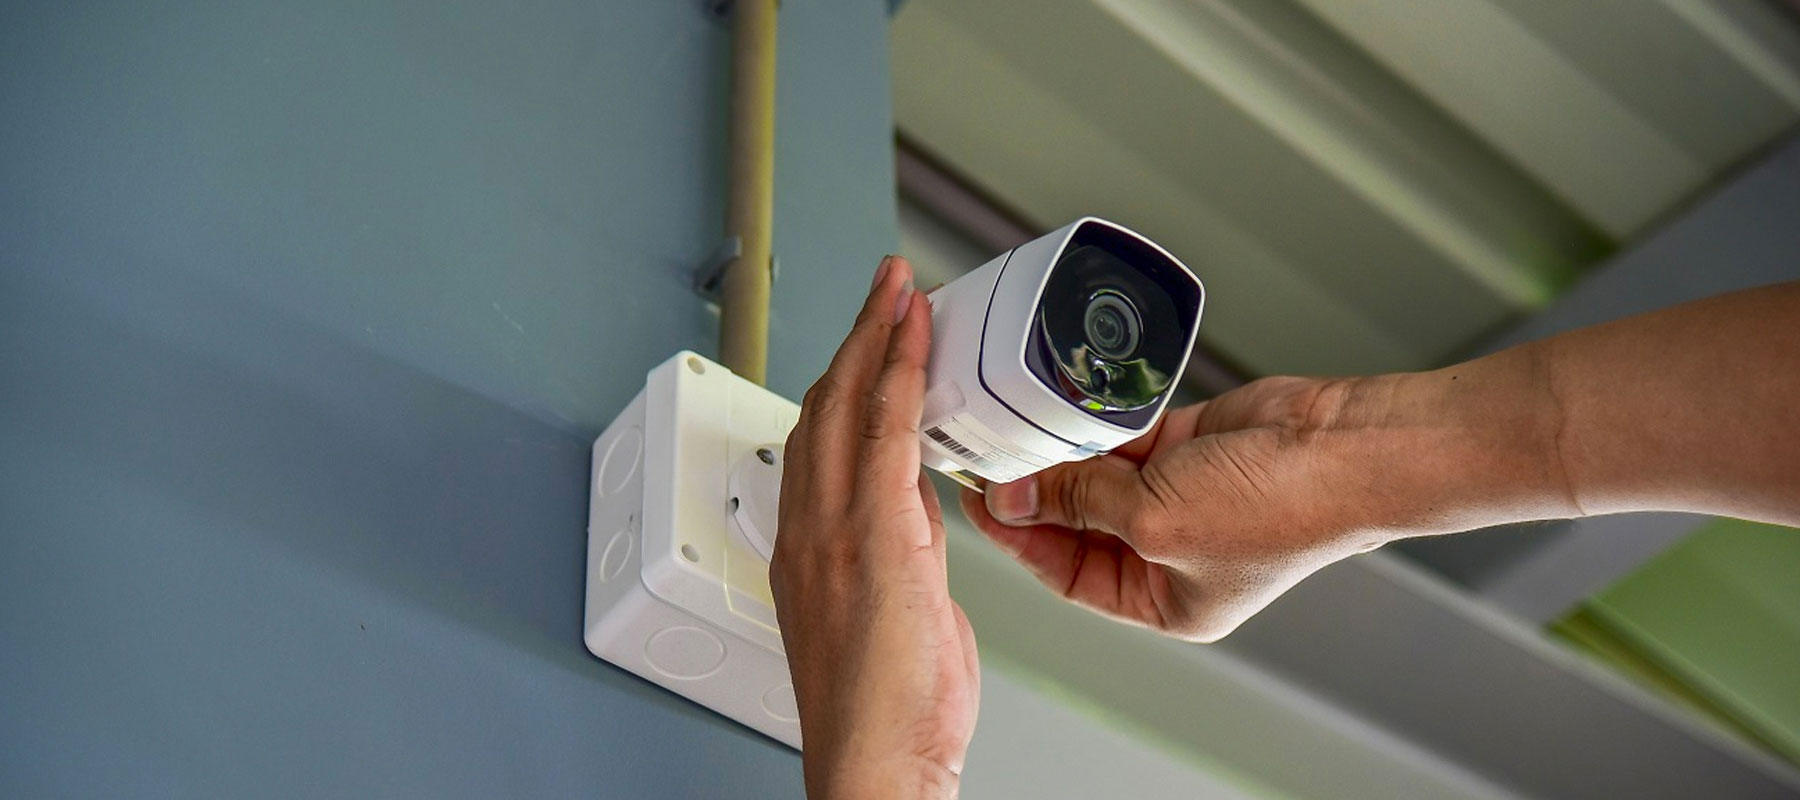 Security Camera Installation Near Me | US Electrical